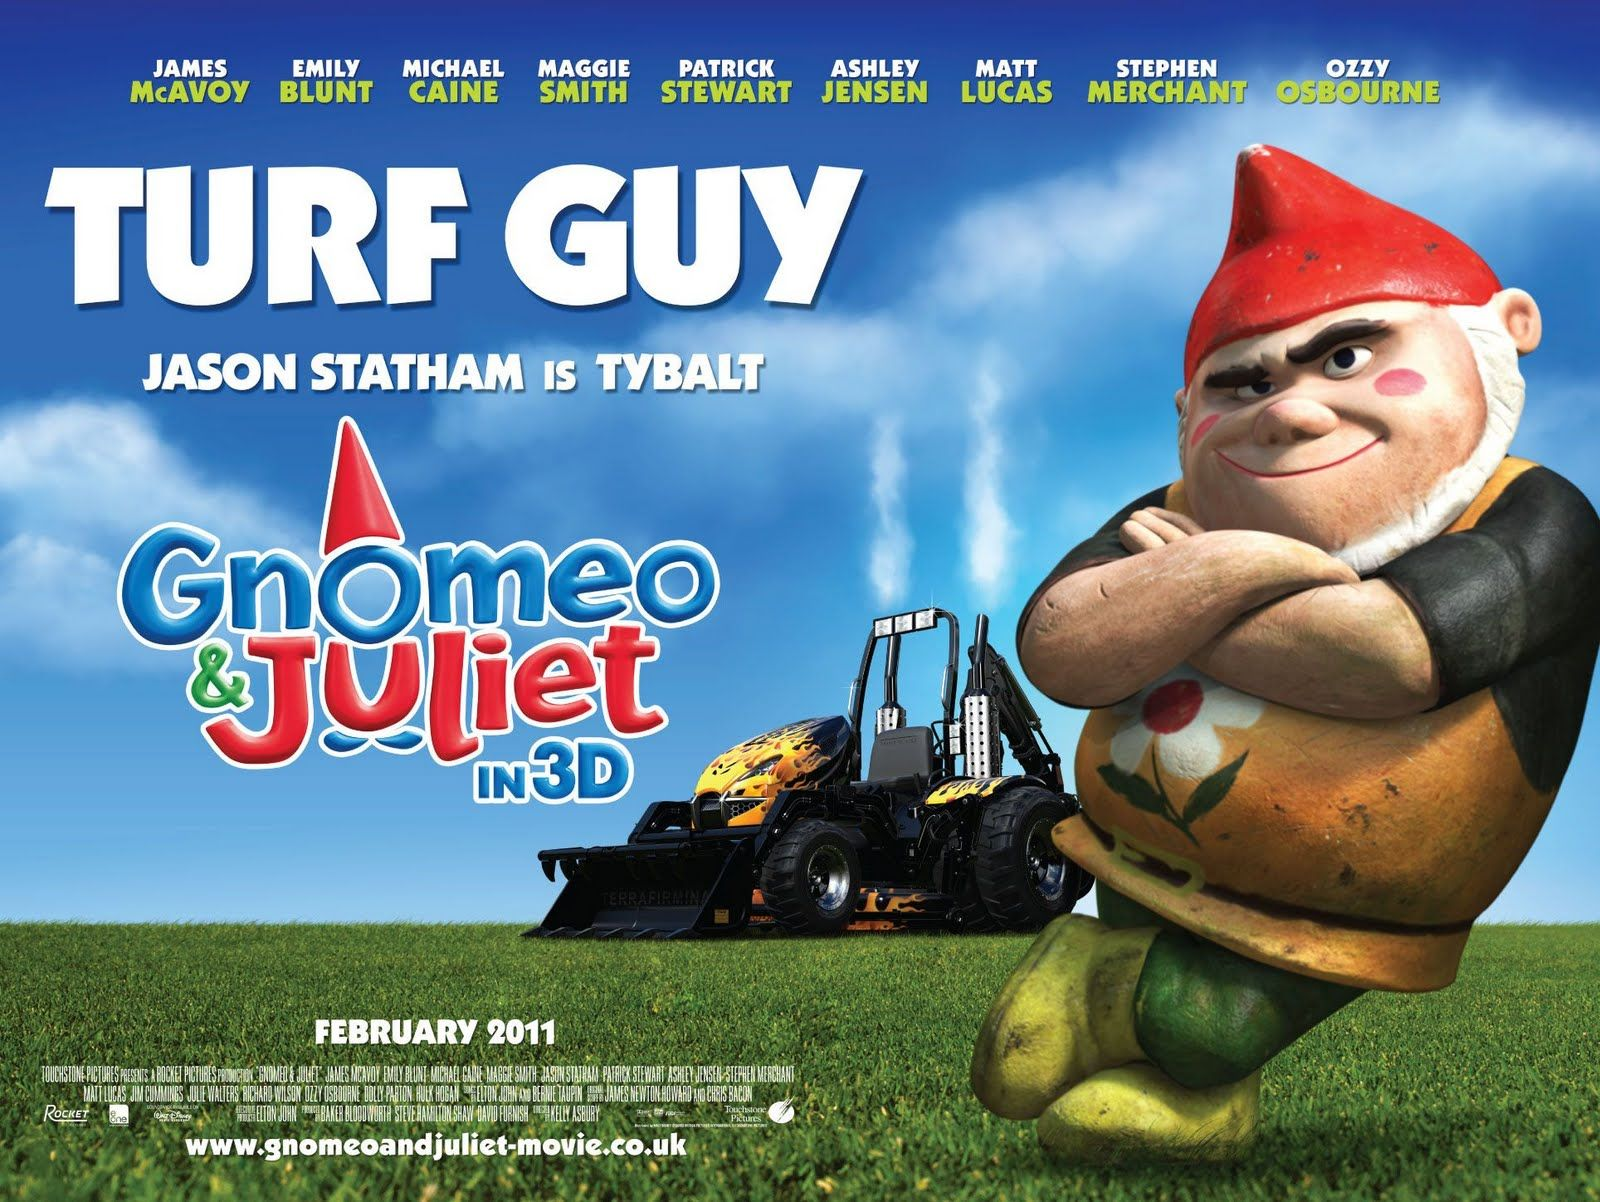 Gnomeo And Juliet Character Poster